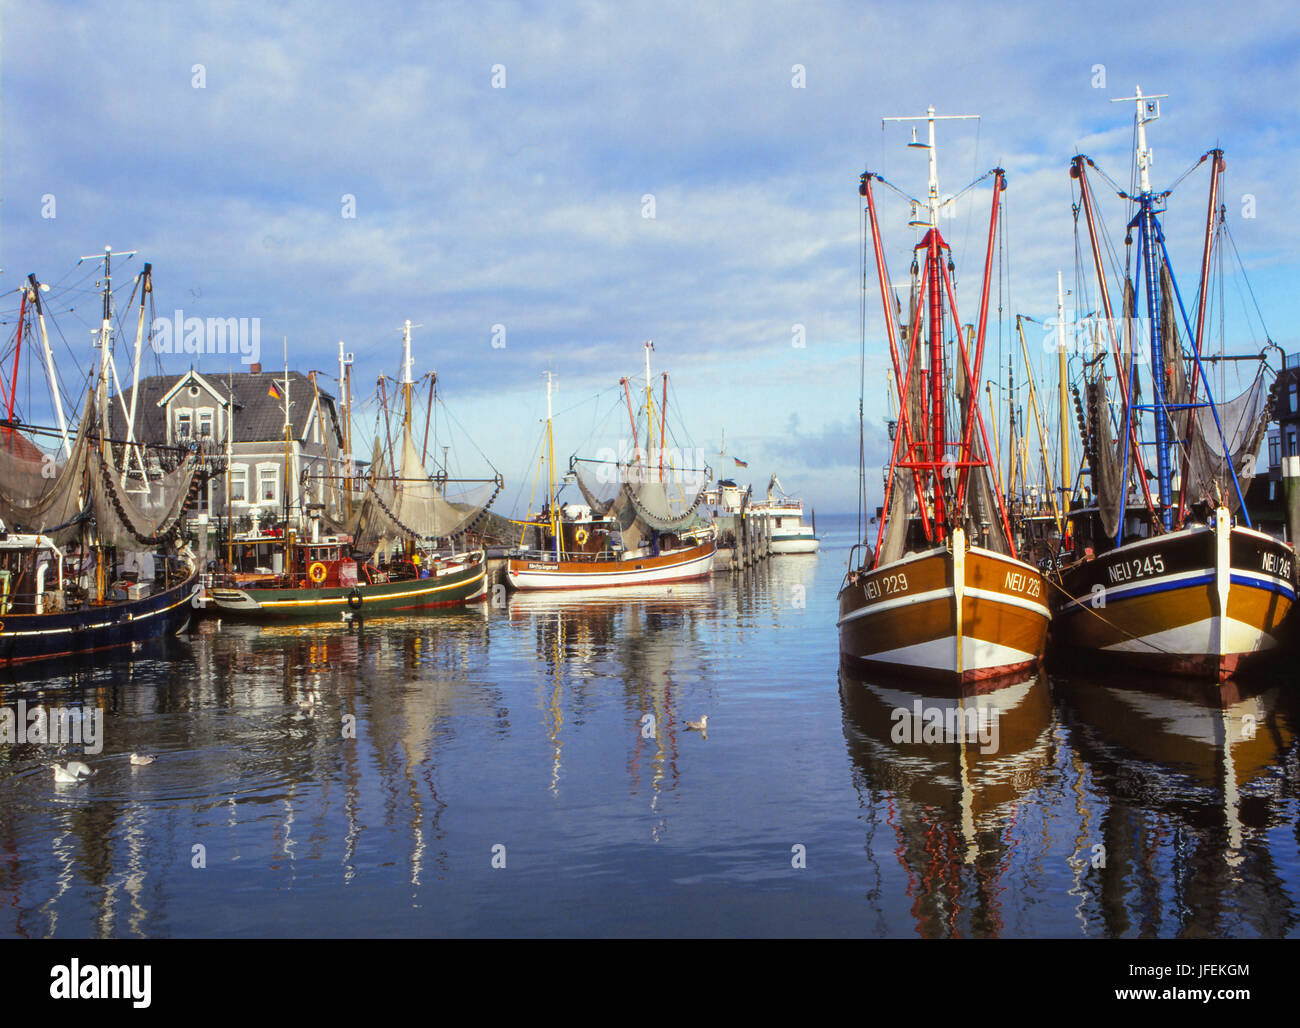 Crab cutters in the harbour of Neuharlingersiel, East Friesland, North Germany, Germany - Stock Image